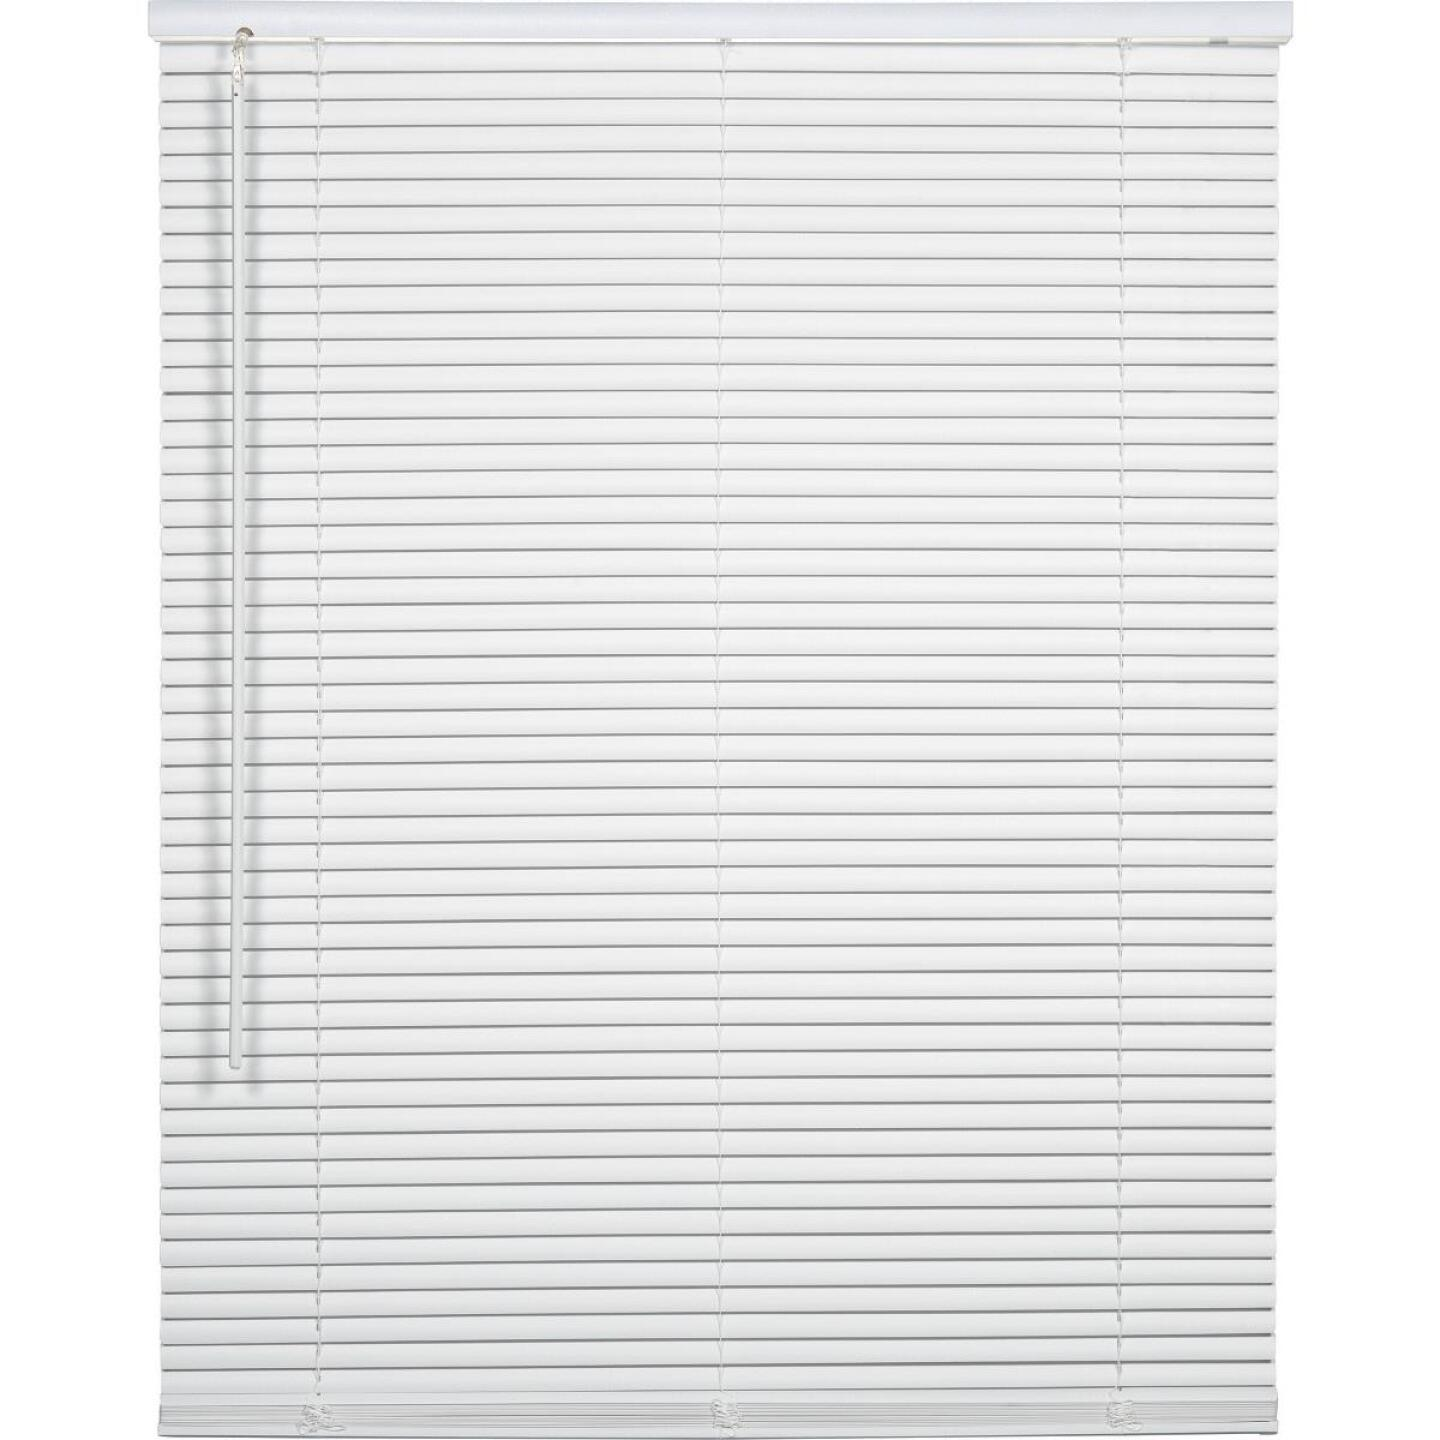 Home Impressions 41 In. x 72 In. x 1 In. White Vinyl Light Filtering Cordless Mini Blind Image 1